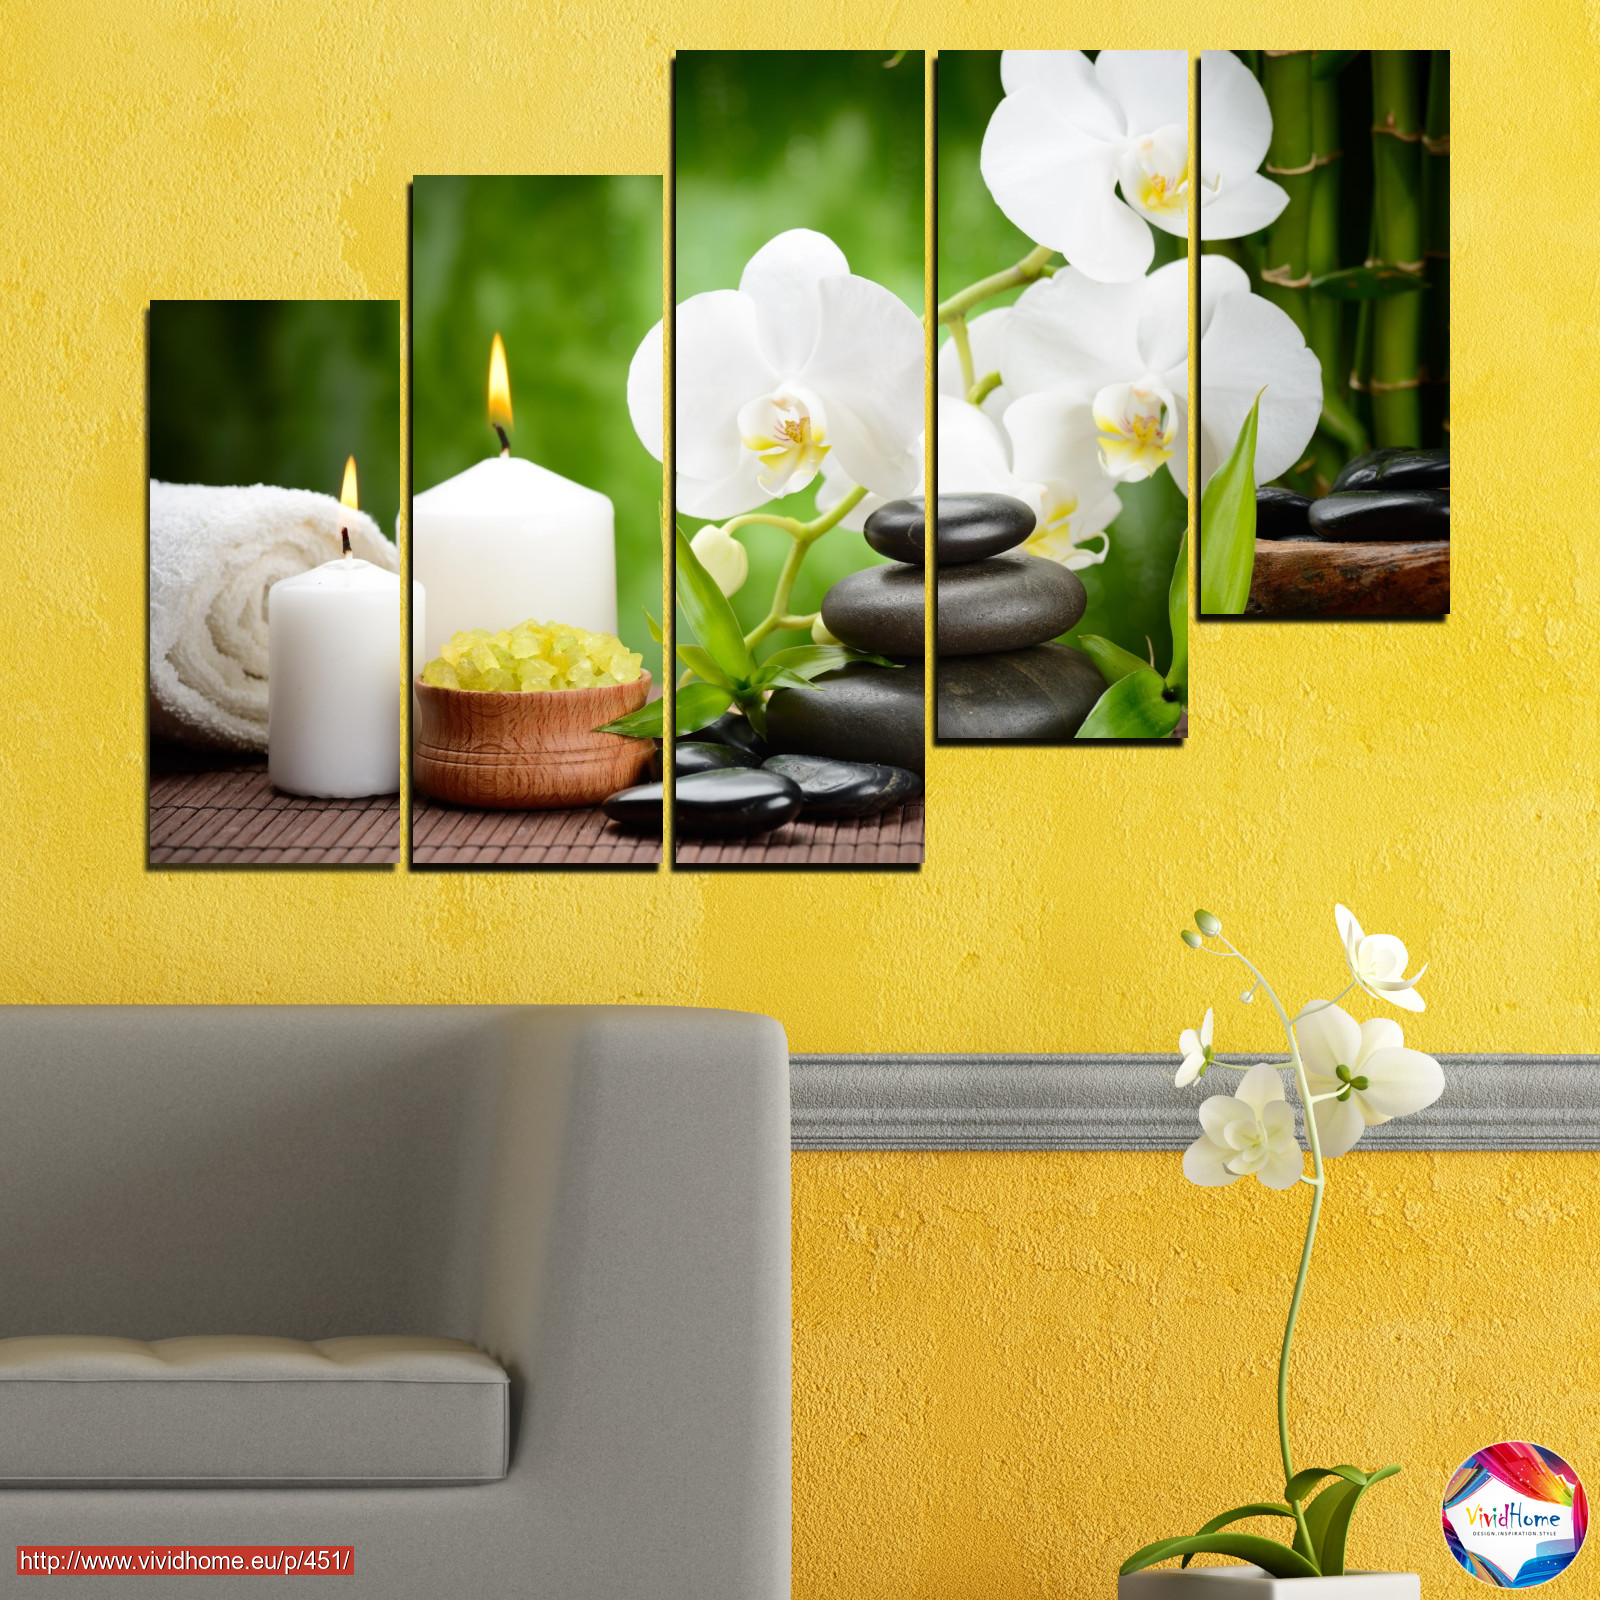 Flowers, Feng shui, Orchid, Zen, Stones, Spa, Candle №0451